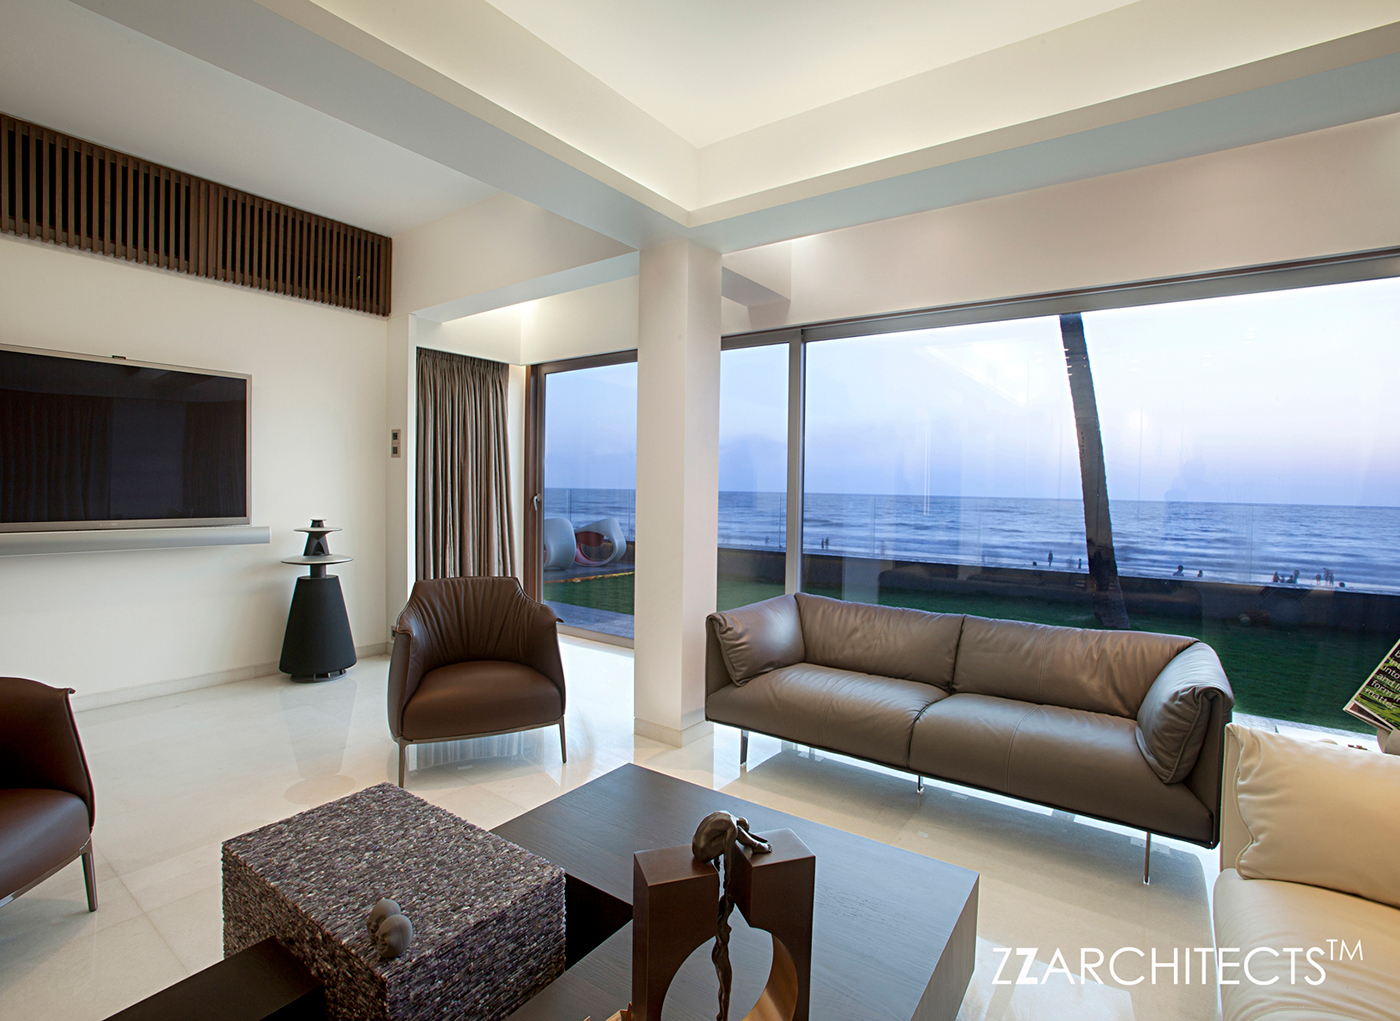 APARTMENT BY THE BEACH BY ZZ ARCHITECTS, MUMBAI, INDIA